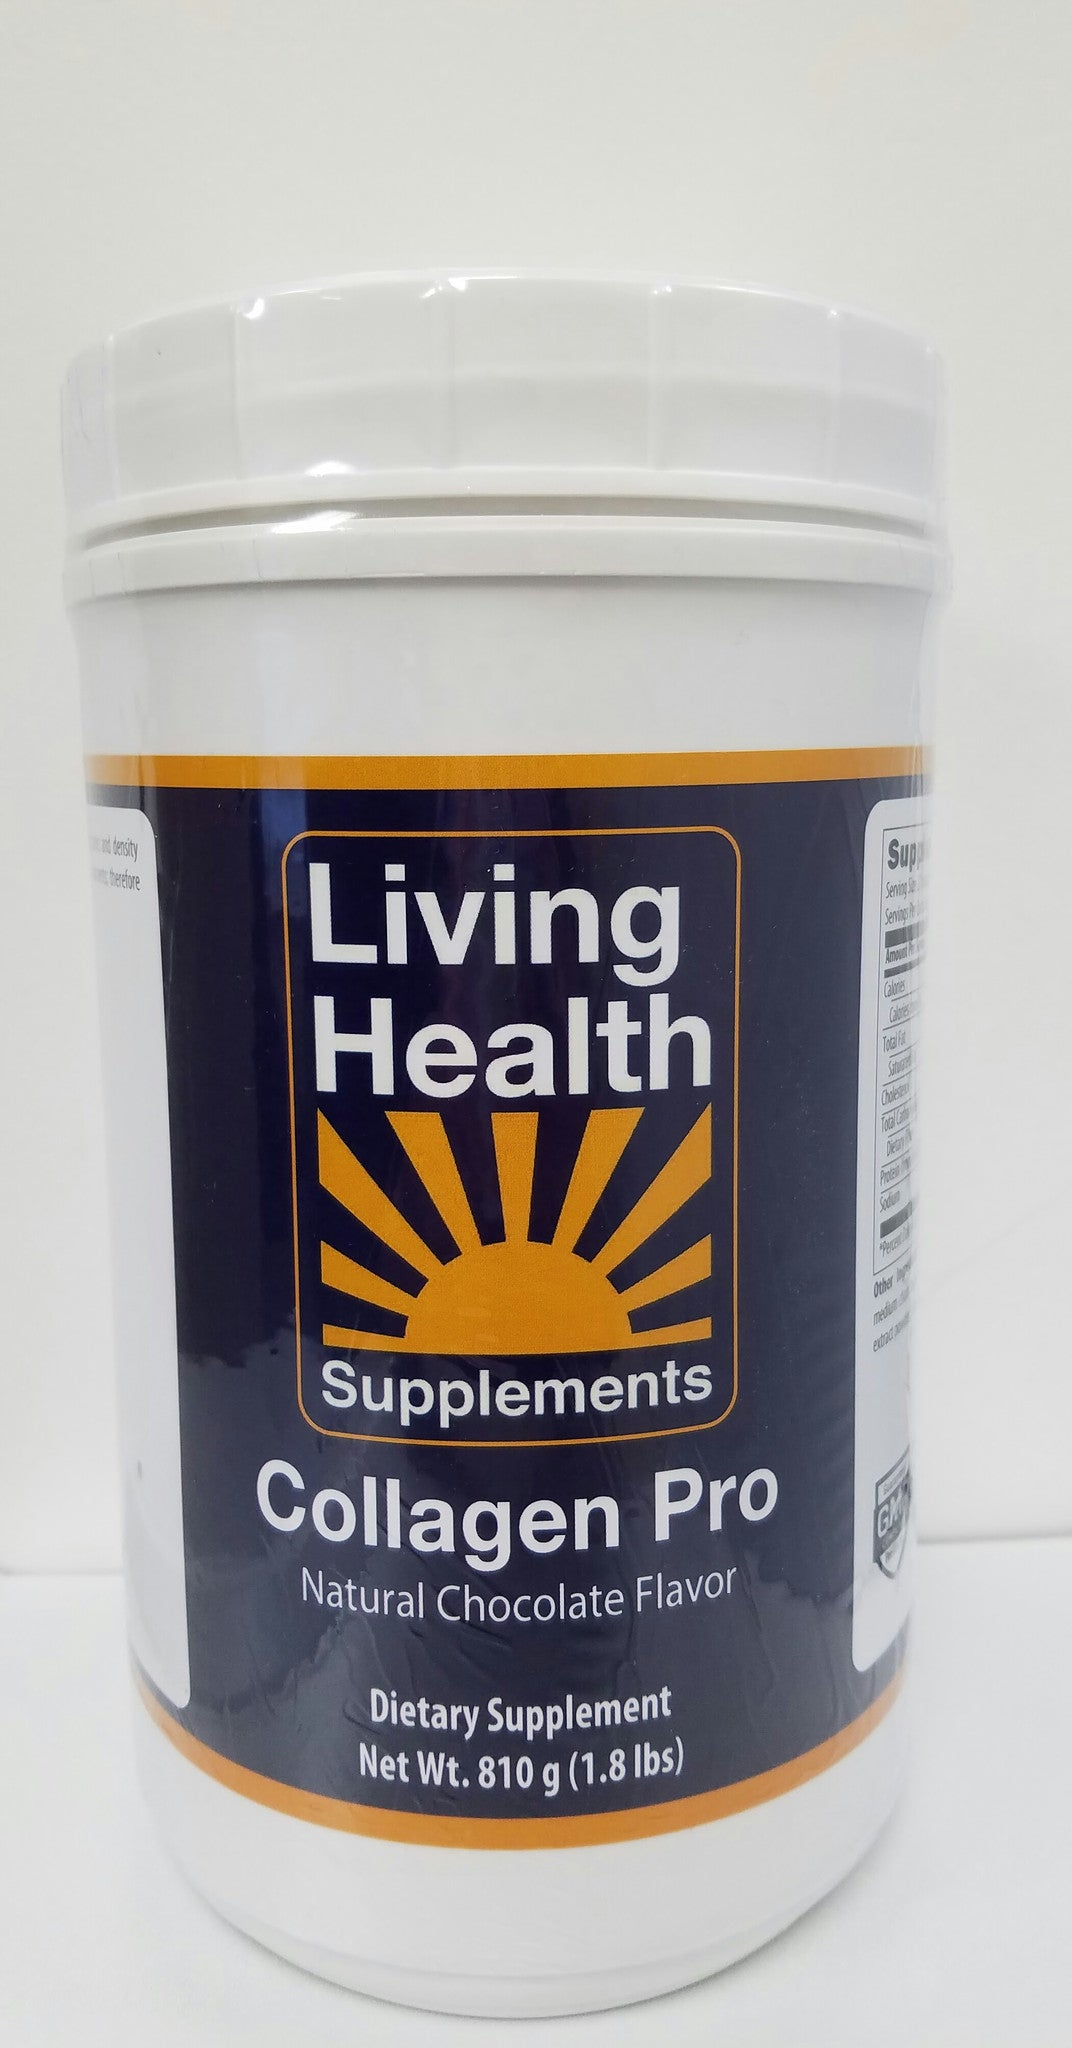 Collagen Pro - Living Health Market